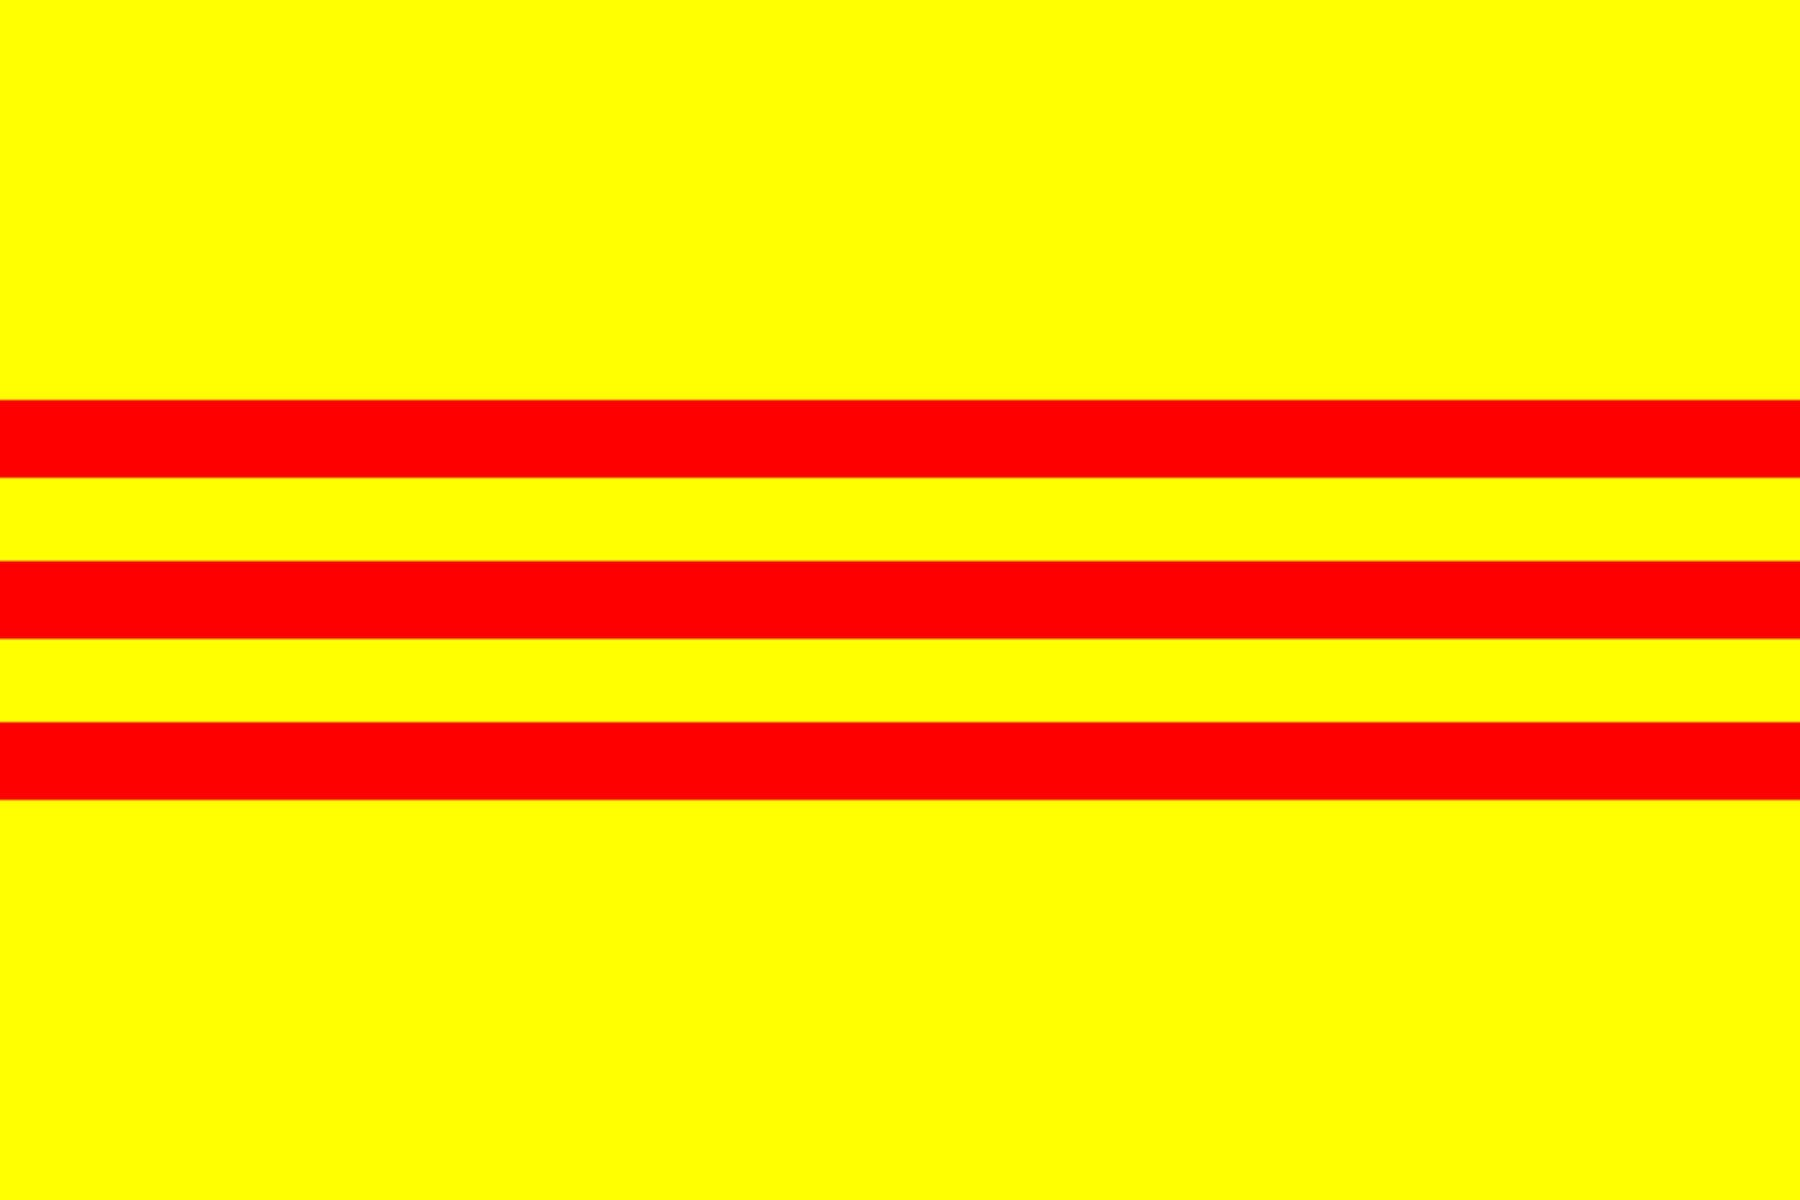 South Vietnam 2' x 3' Indoor Polyester Flag